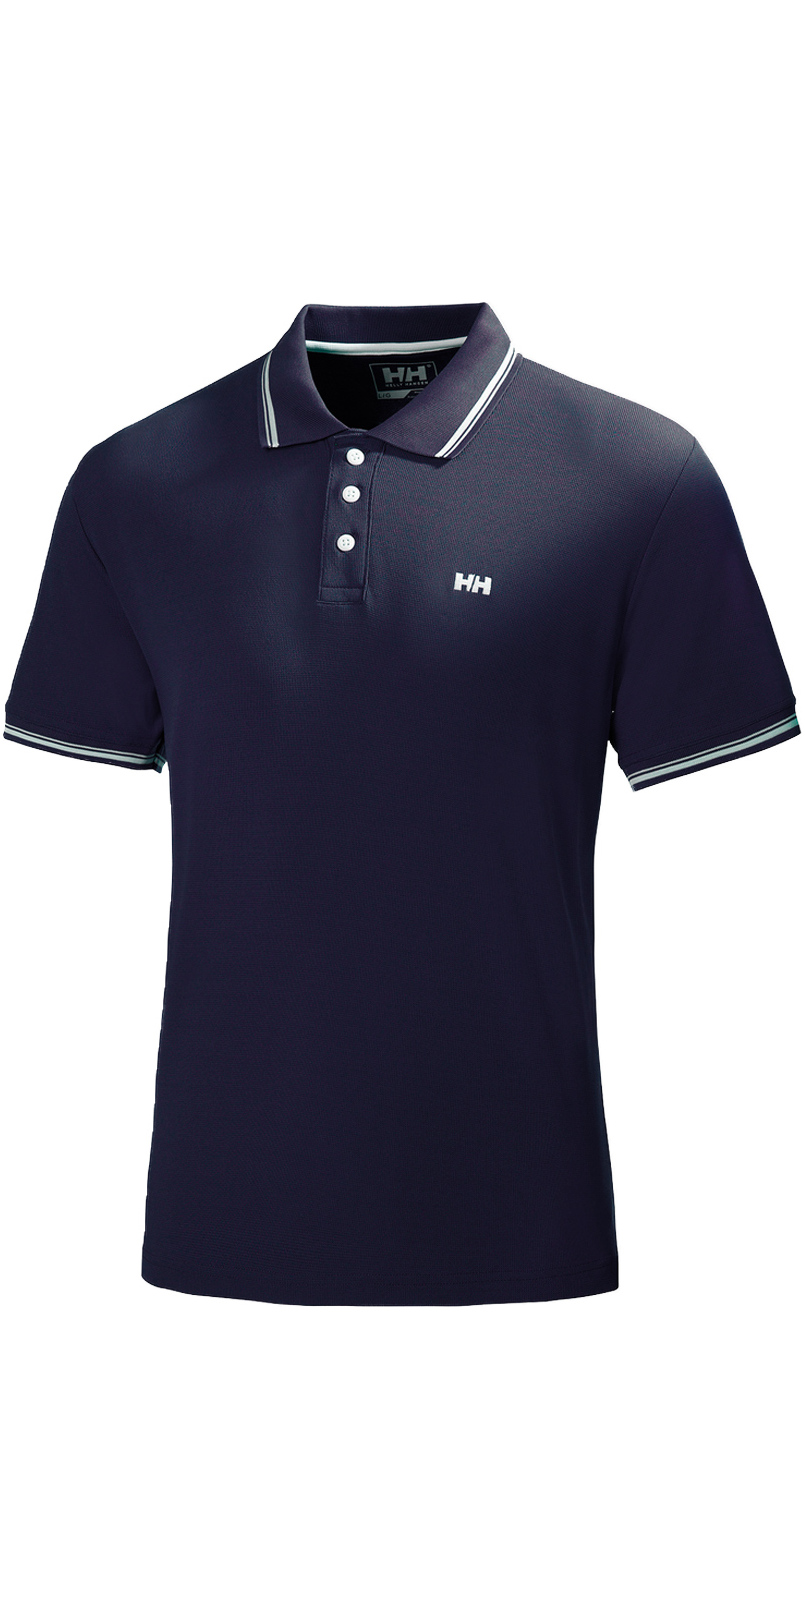 70ba29fc 2019 Helly Hansen Kos Short Sleeve Polo in Navy 50565 - T-shirts - Mens -  Fashion - by Helly | Wetsuit Outlet